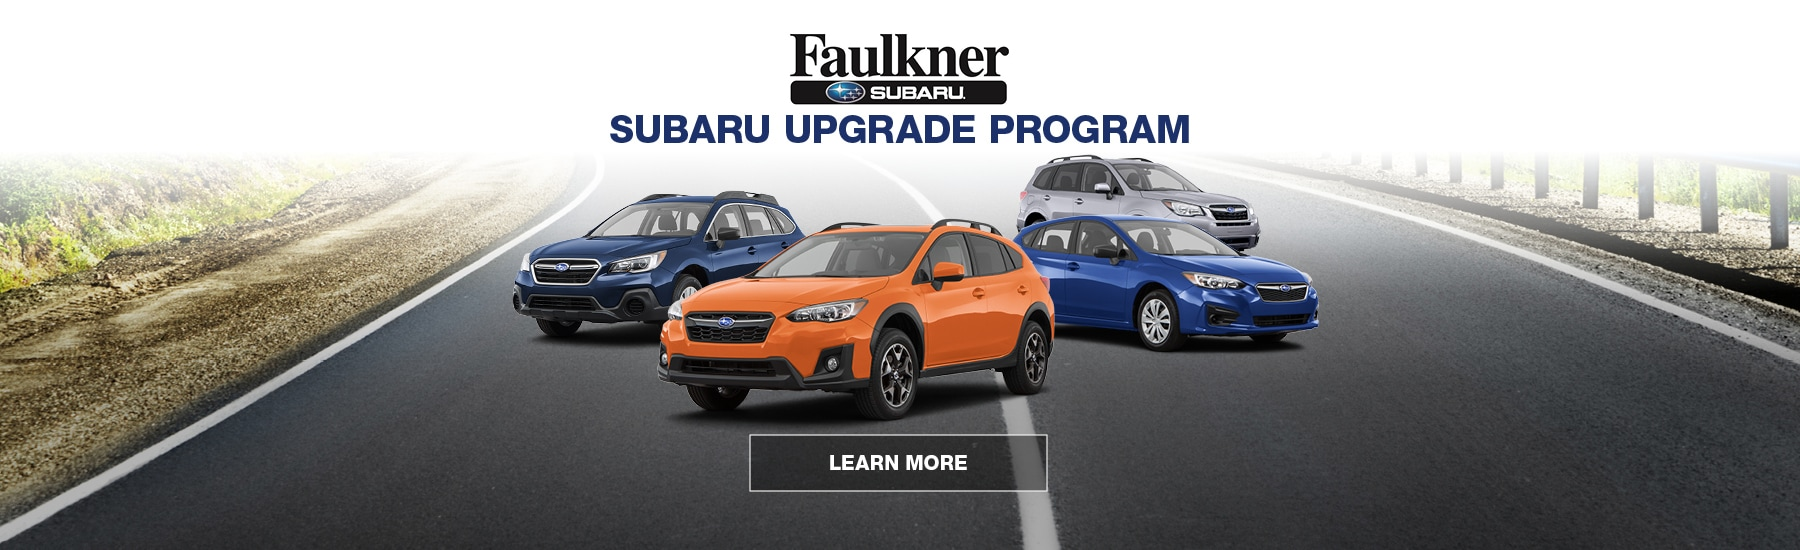 Subaru Dealership Serving Allentown, Lehigh County, Northampton ...